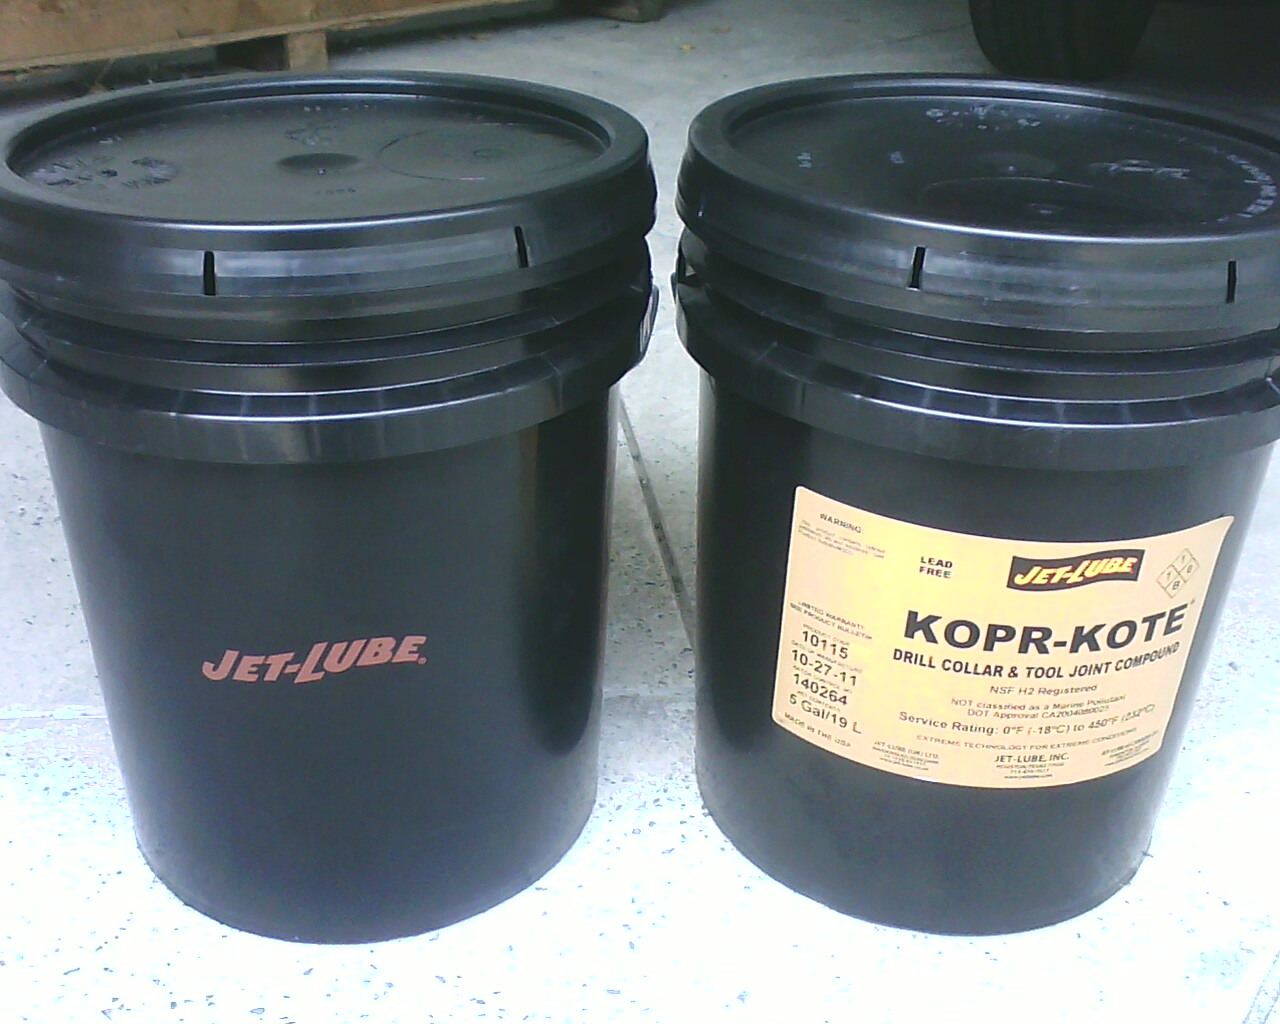 Mỡ đồng KOPR-KOTE Drill Collar & Tool Joint Compound, 5 Gal/19 L. Maker: JET-LUBE